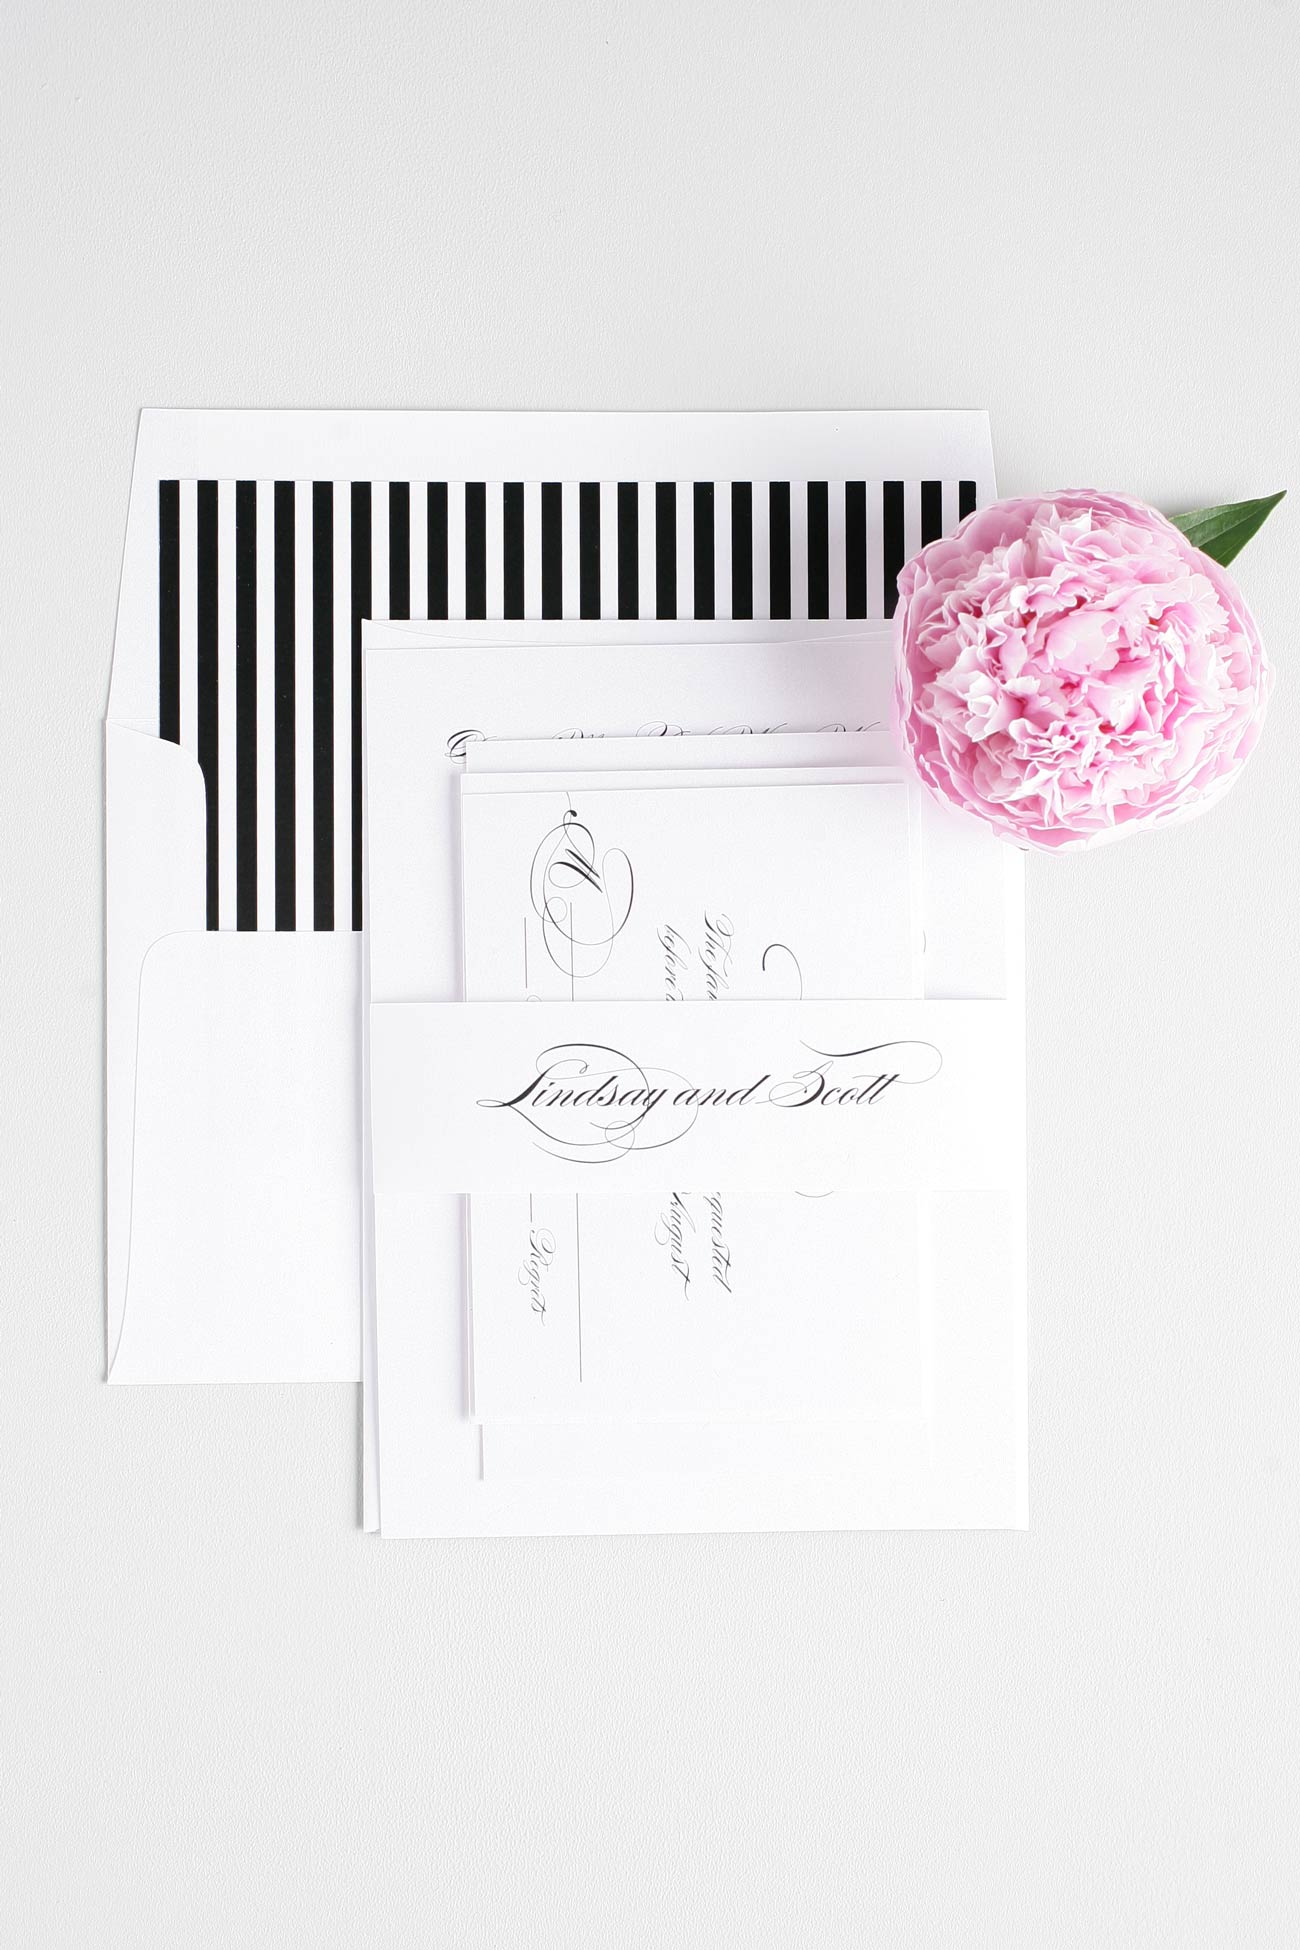 Gorgeous script wedding invitations with striped envelope liner